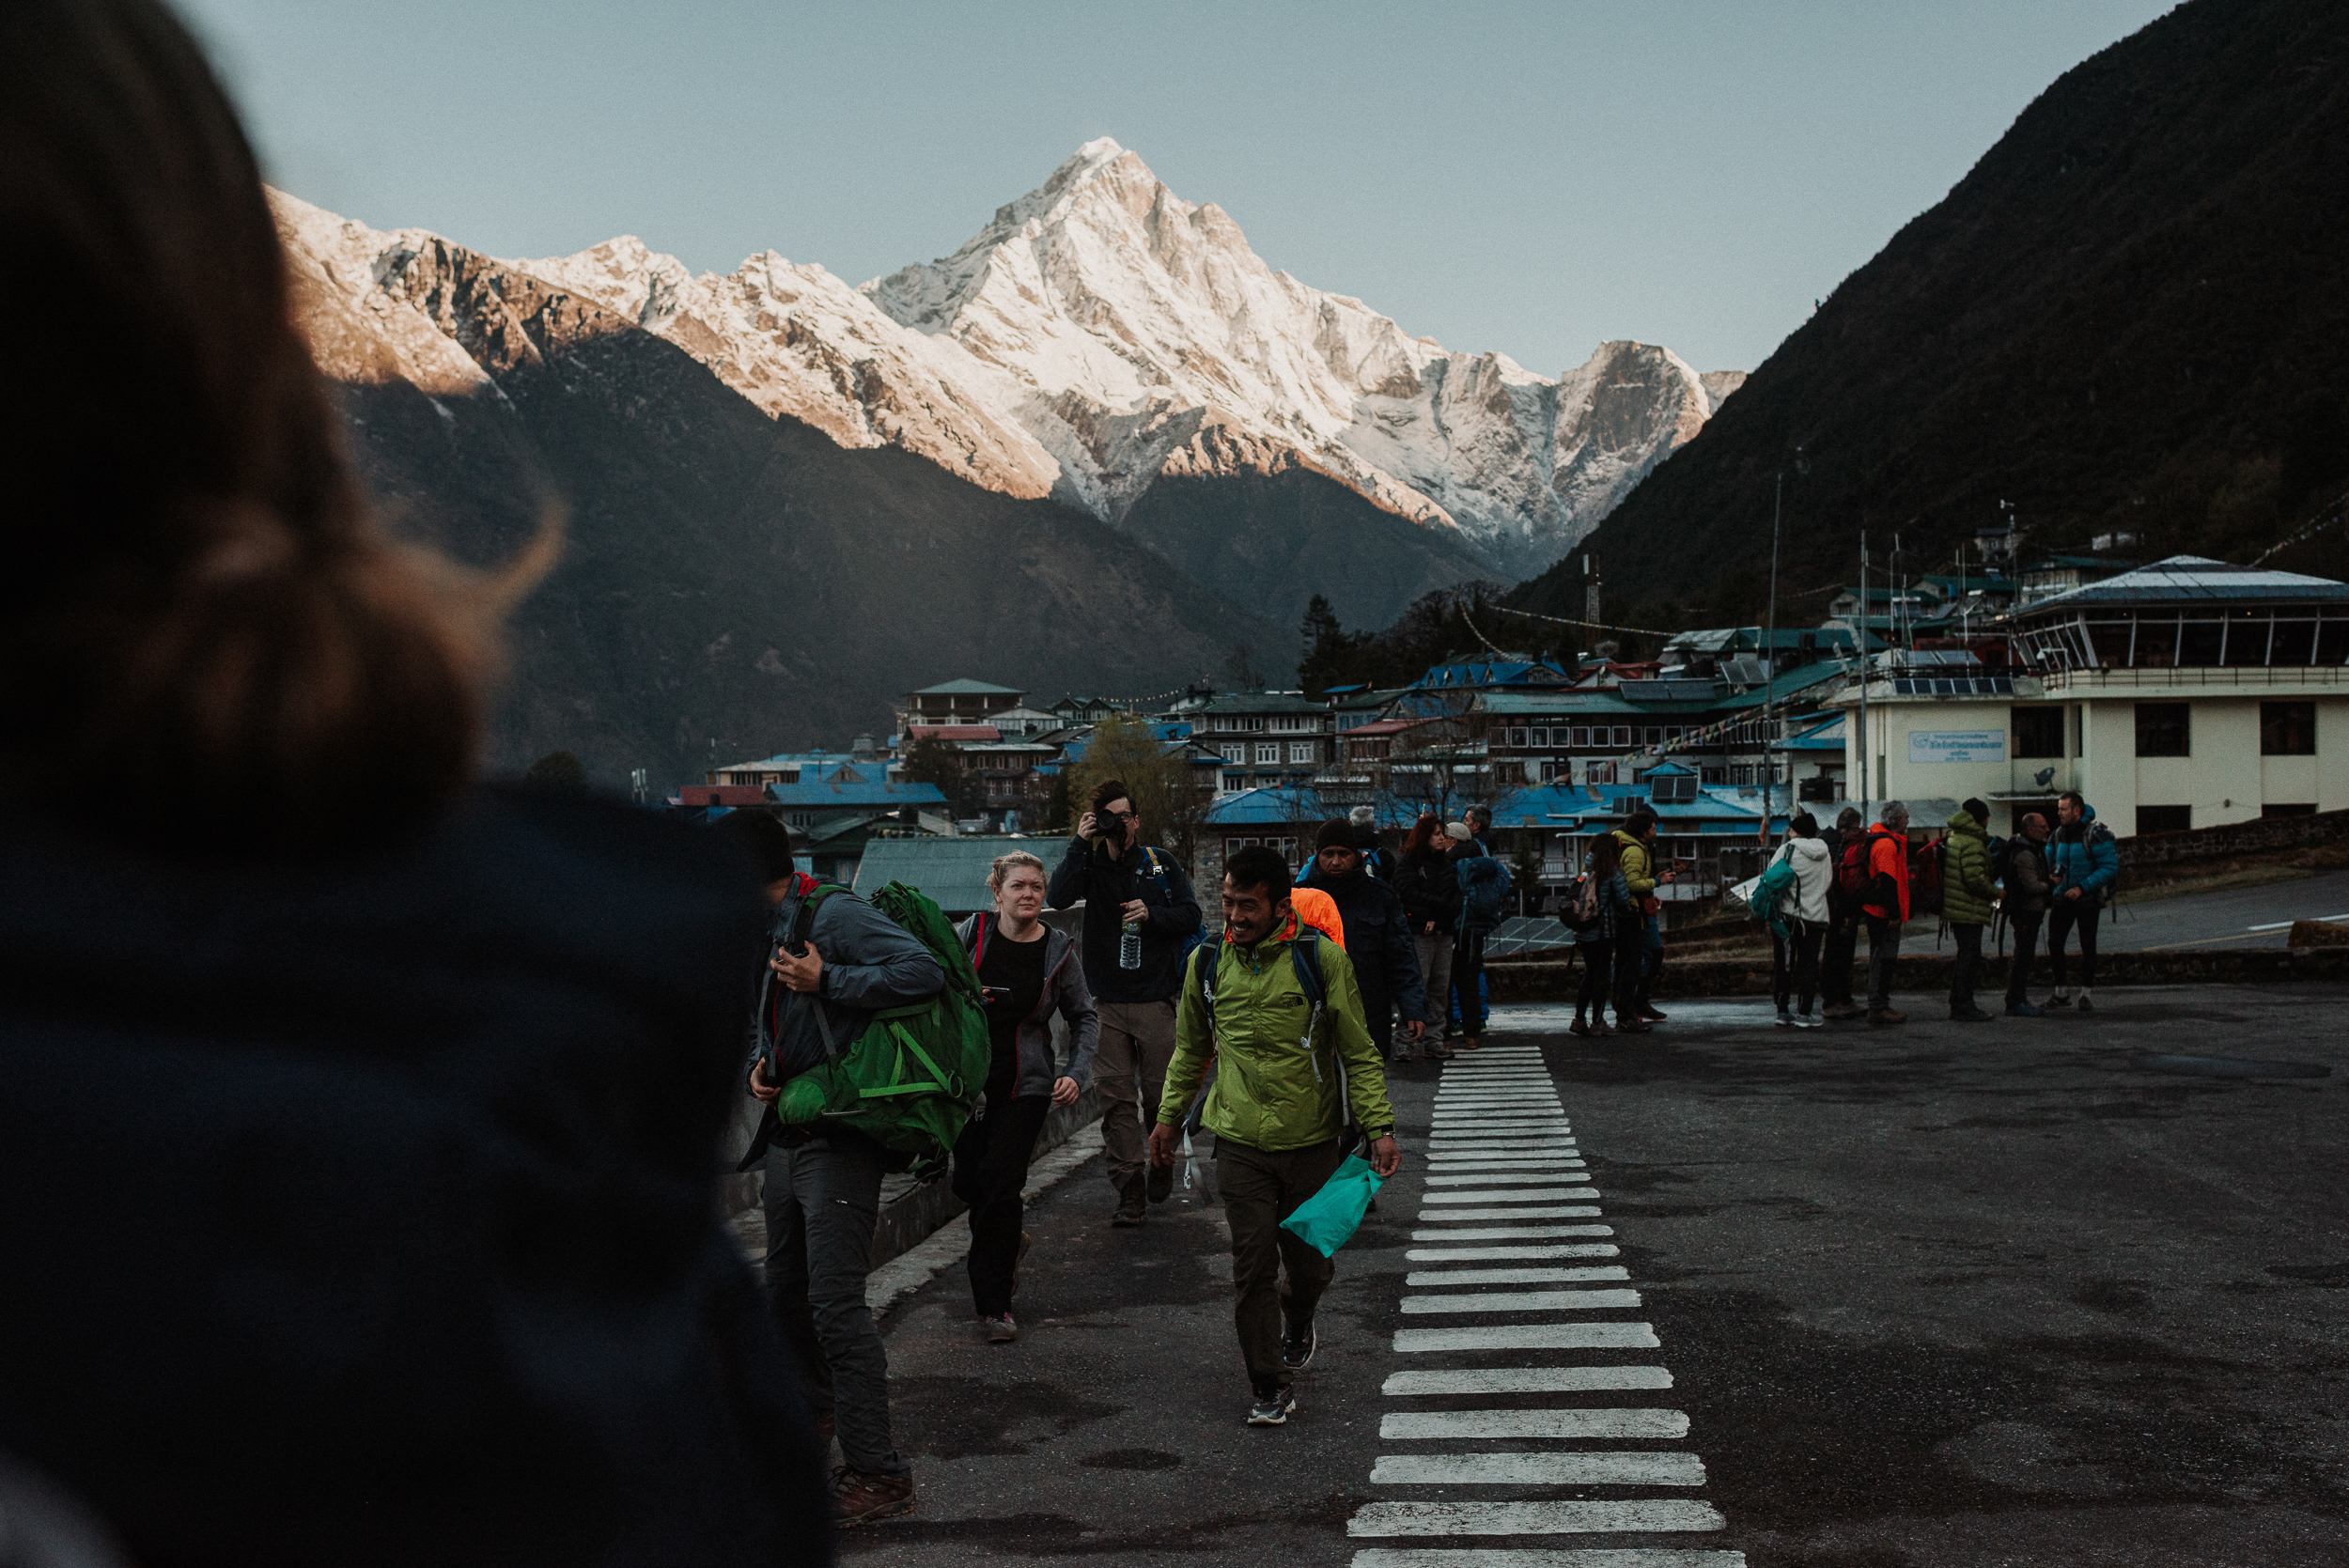 Nepal_EverestBaseCamp_2019_TaraShupe_Photography_DSC_3422.jpg